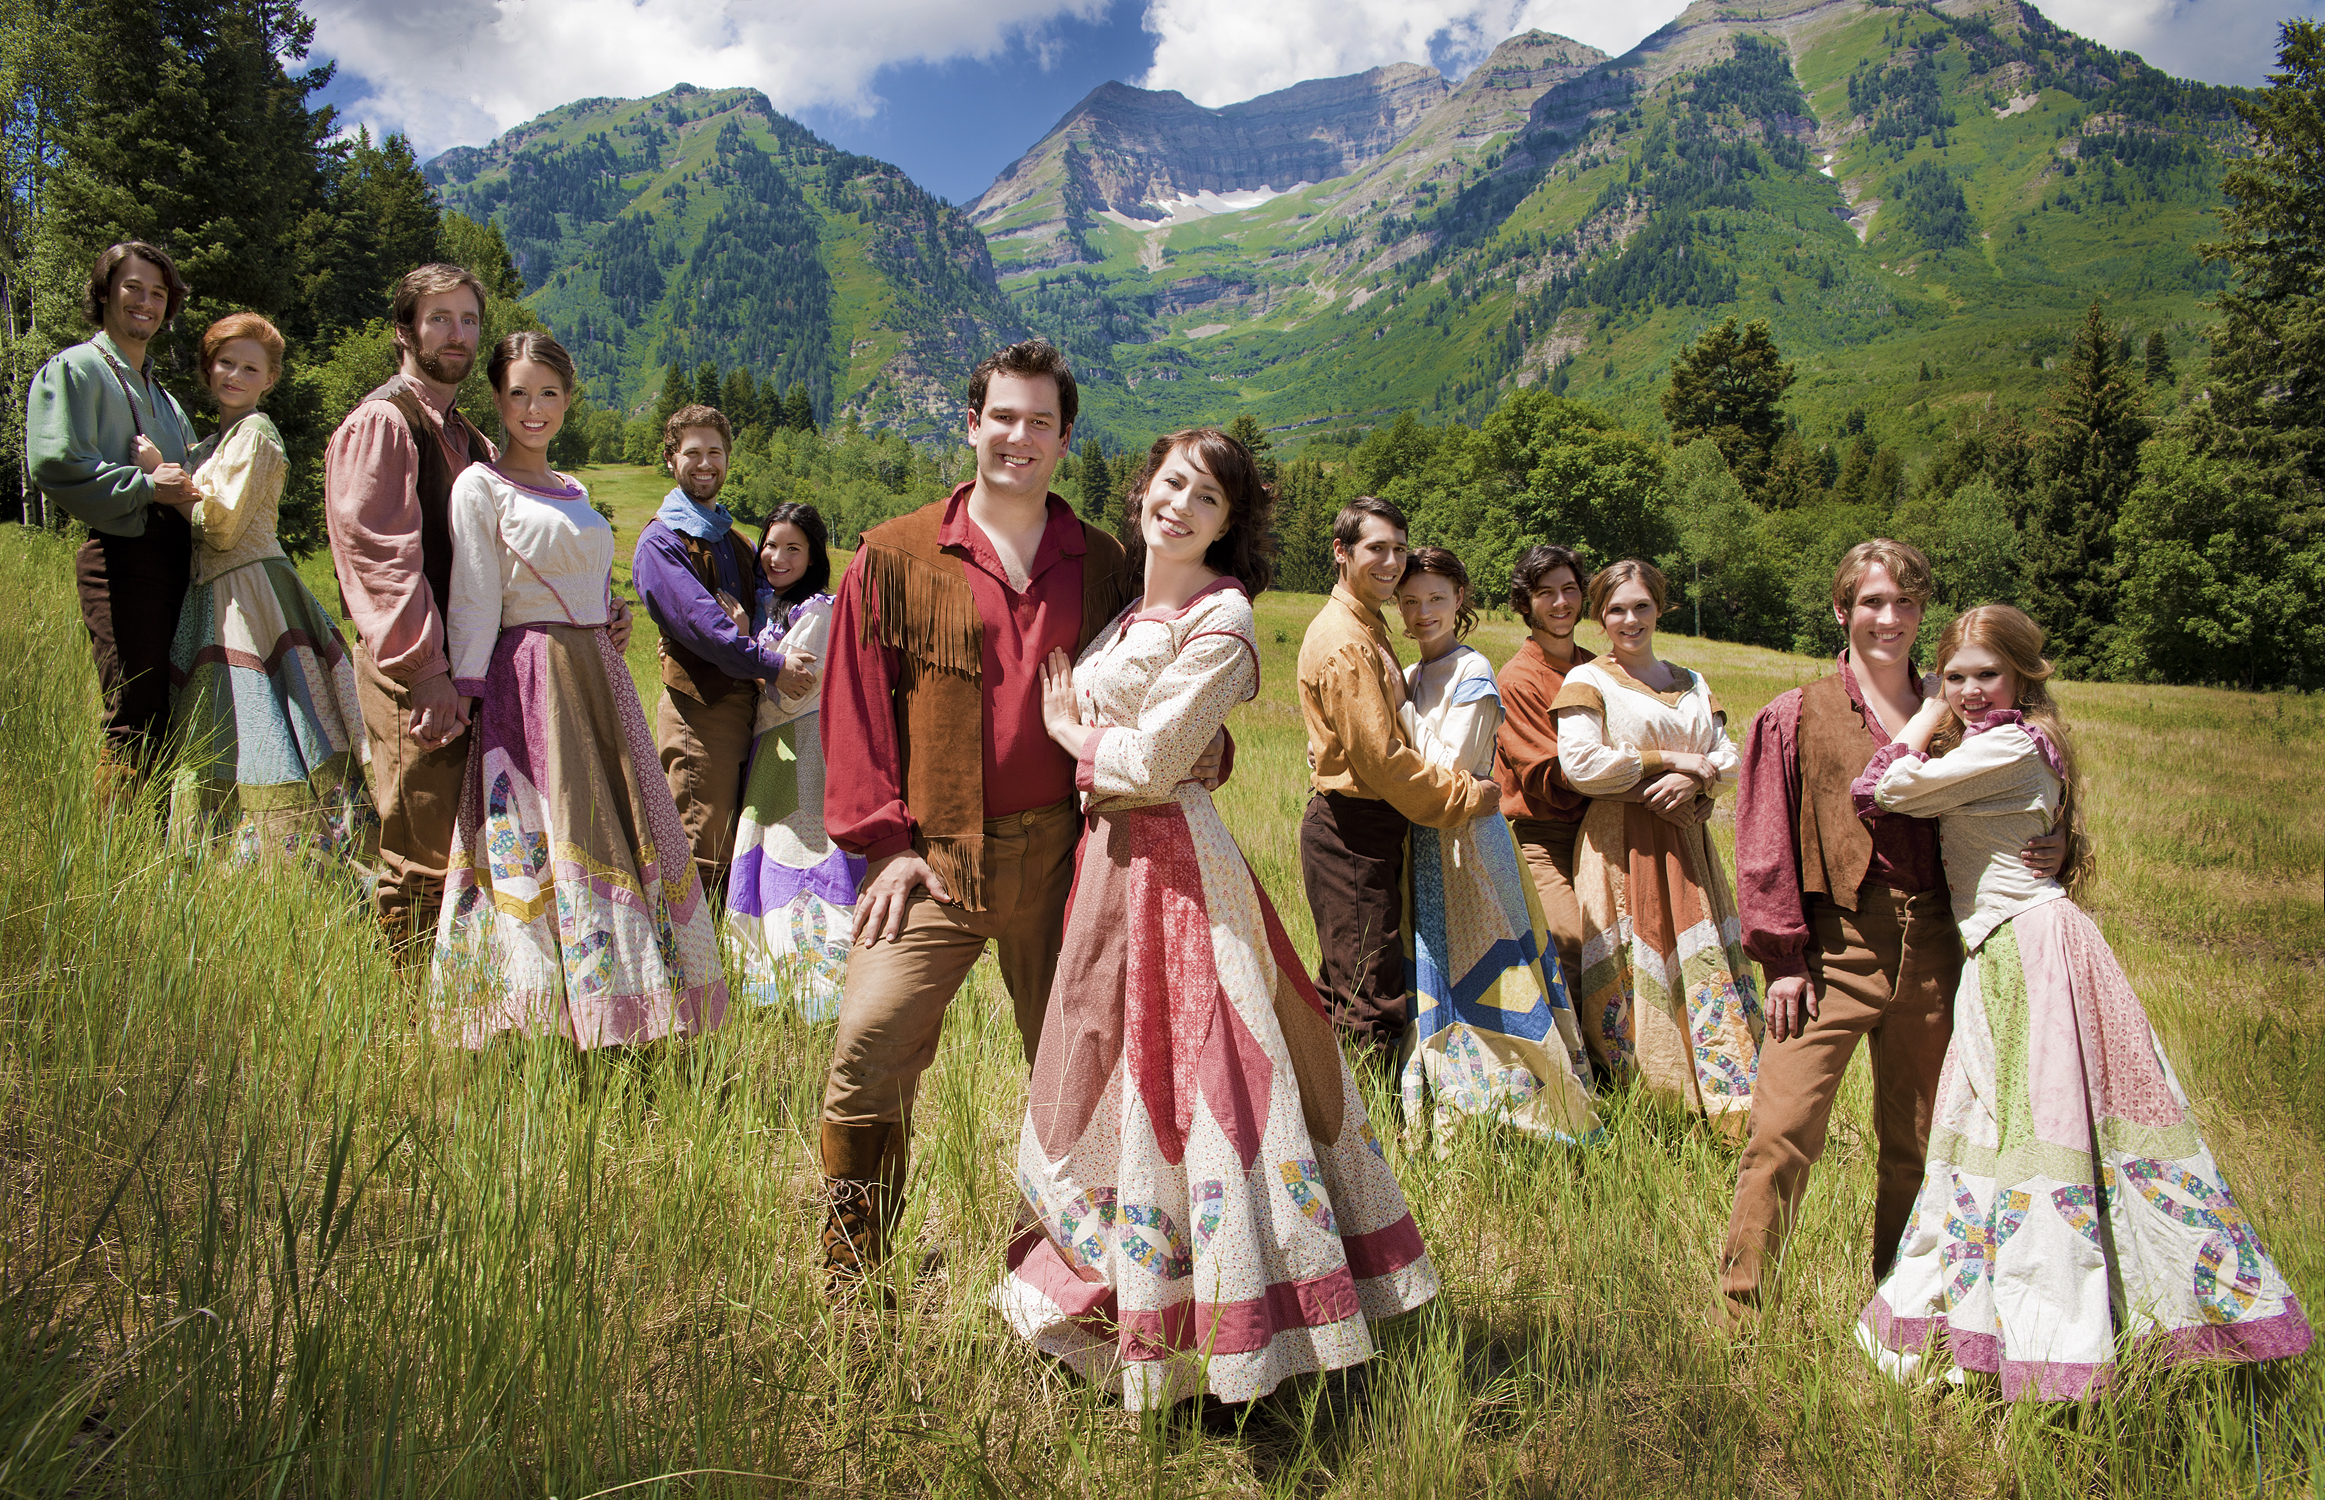 Bless your beautiful hide! SEVEN BRIDES is at Sundance